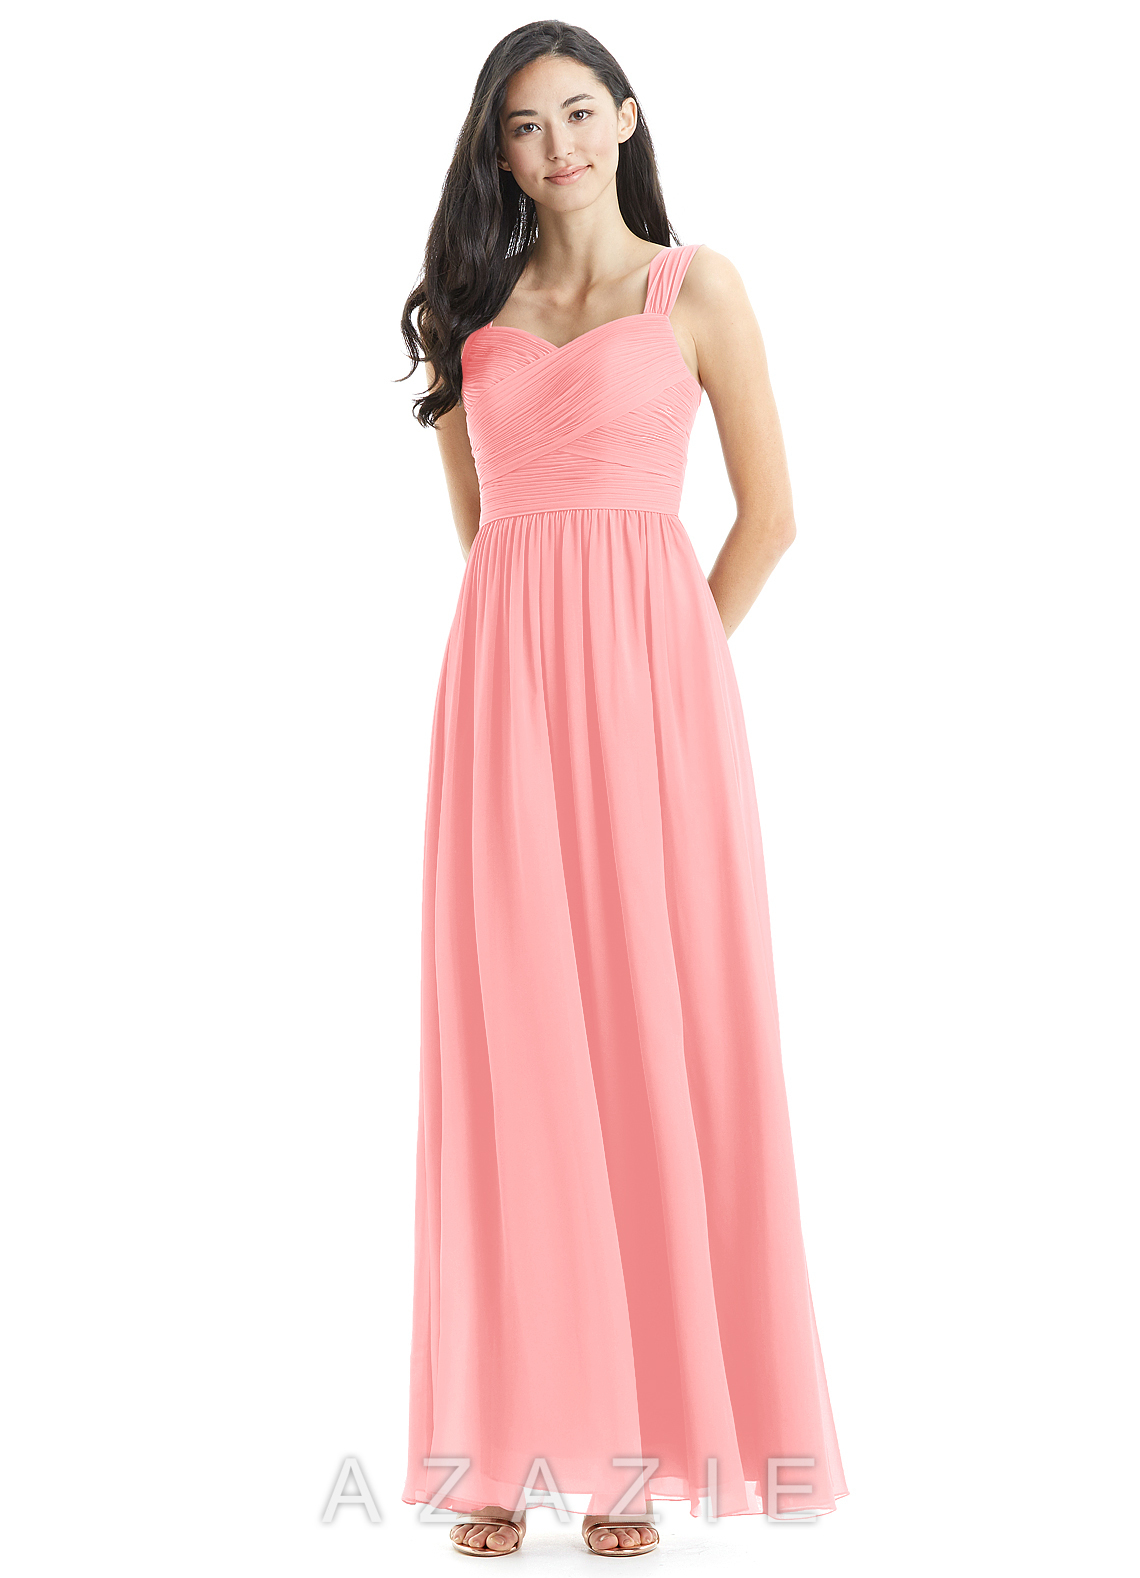 26854c0b9ed Azazie Zapheira Clearance Bridesmaid Dress